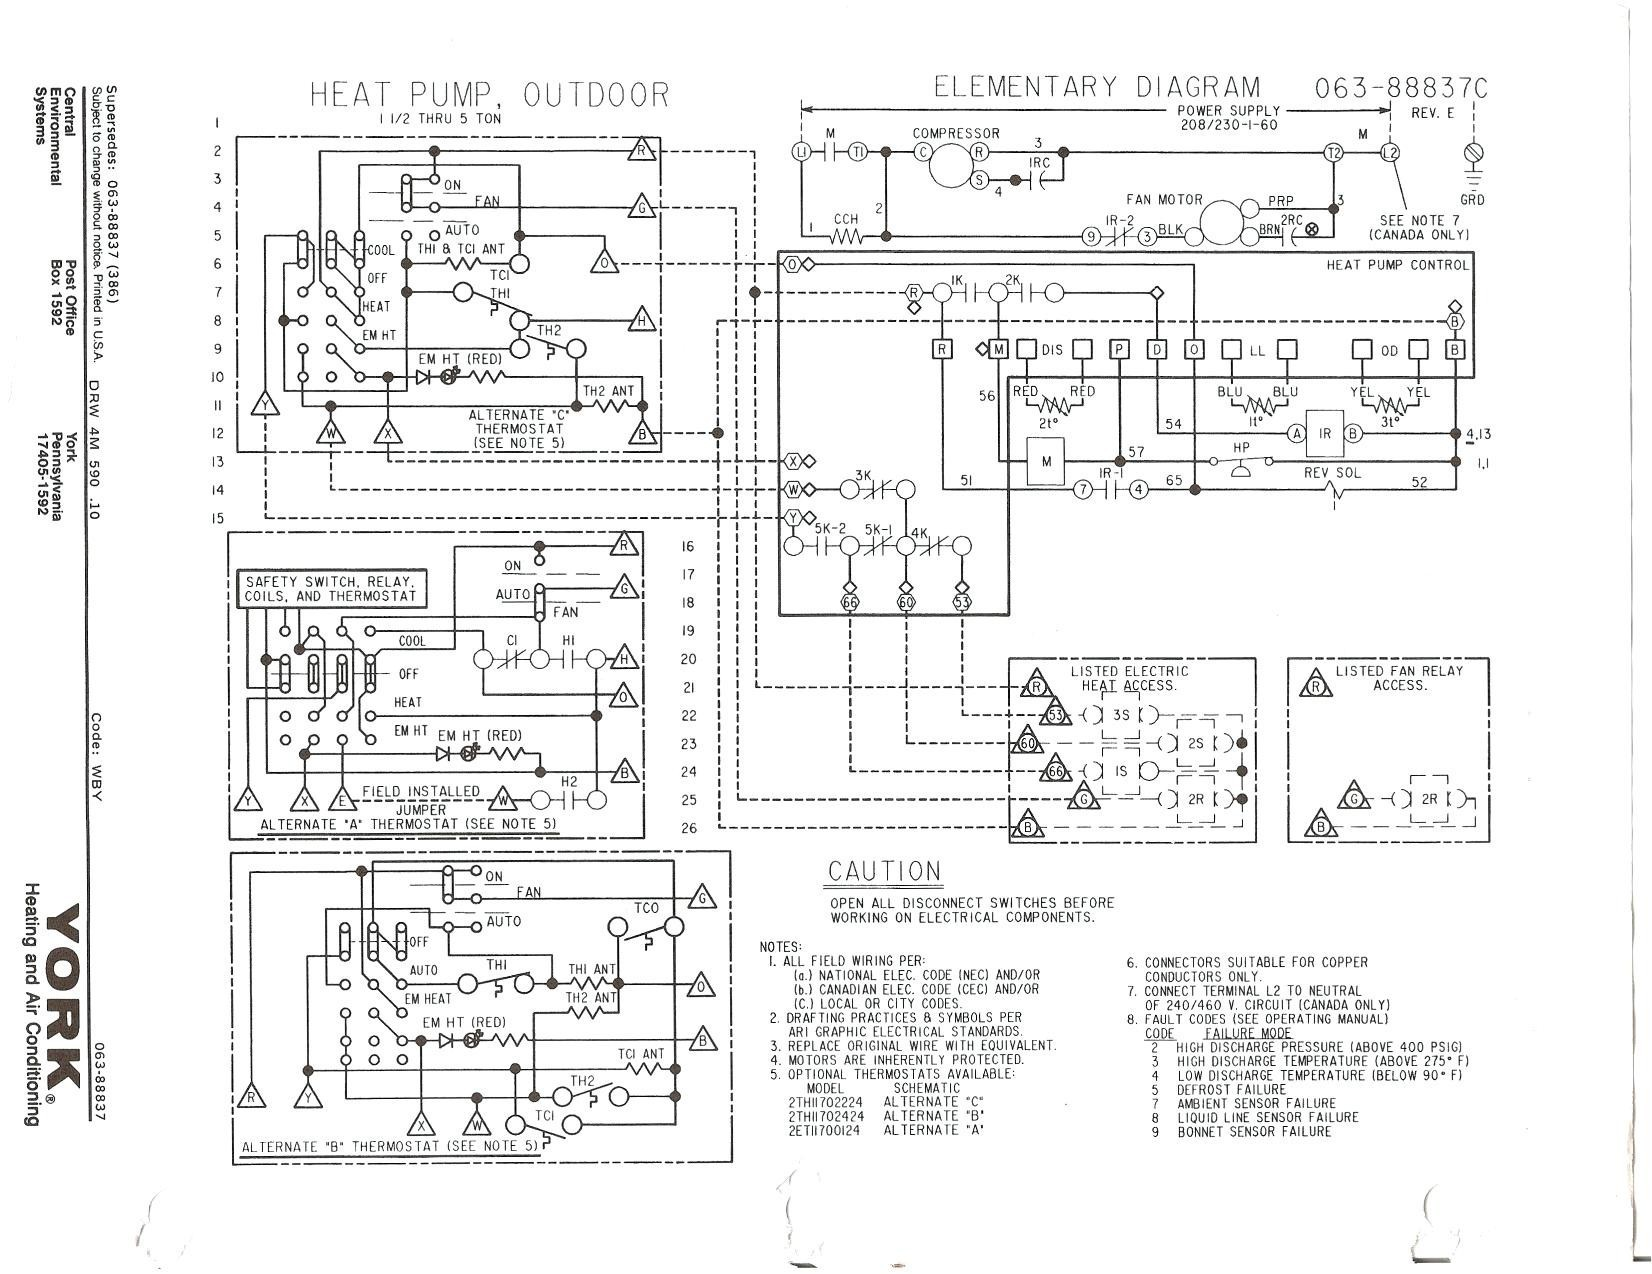 Bard Heat Pump Wiring Diagram Goodman Heat Pump Wiring Diagram Best thermostat for